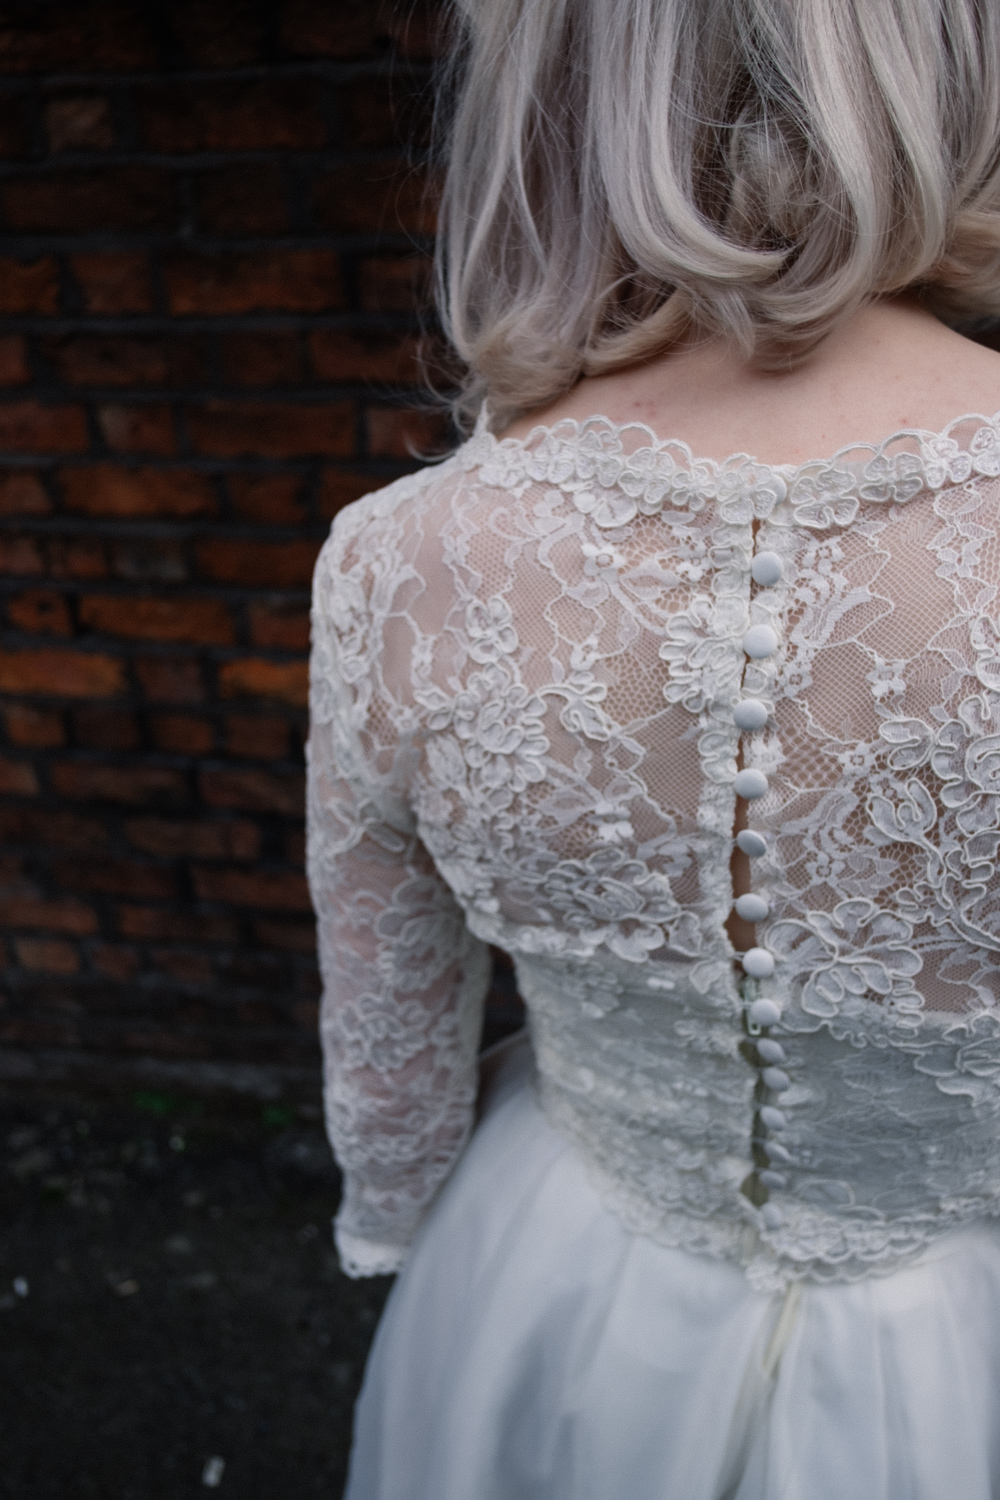 Showing the back detail with small buttons on the handmade dress by Wilderness Bride